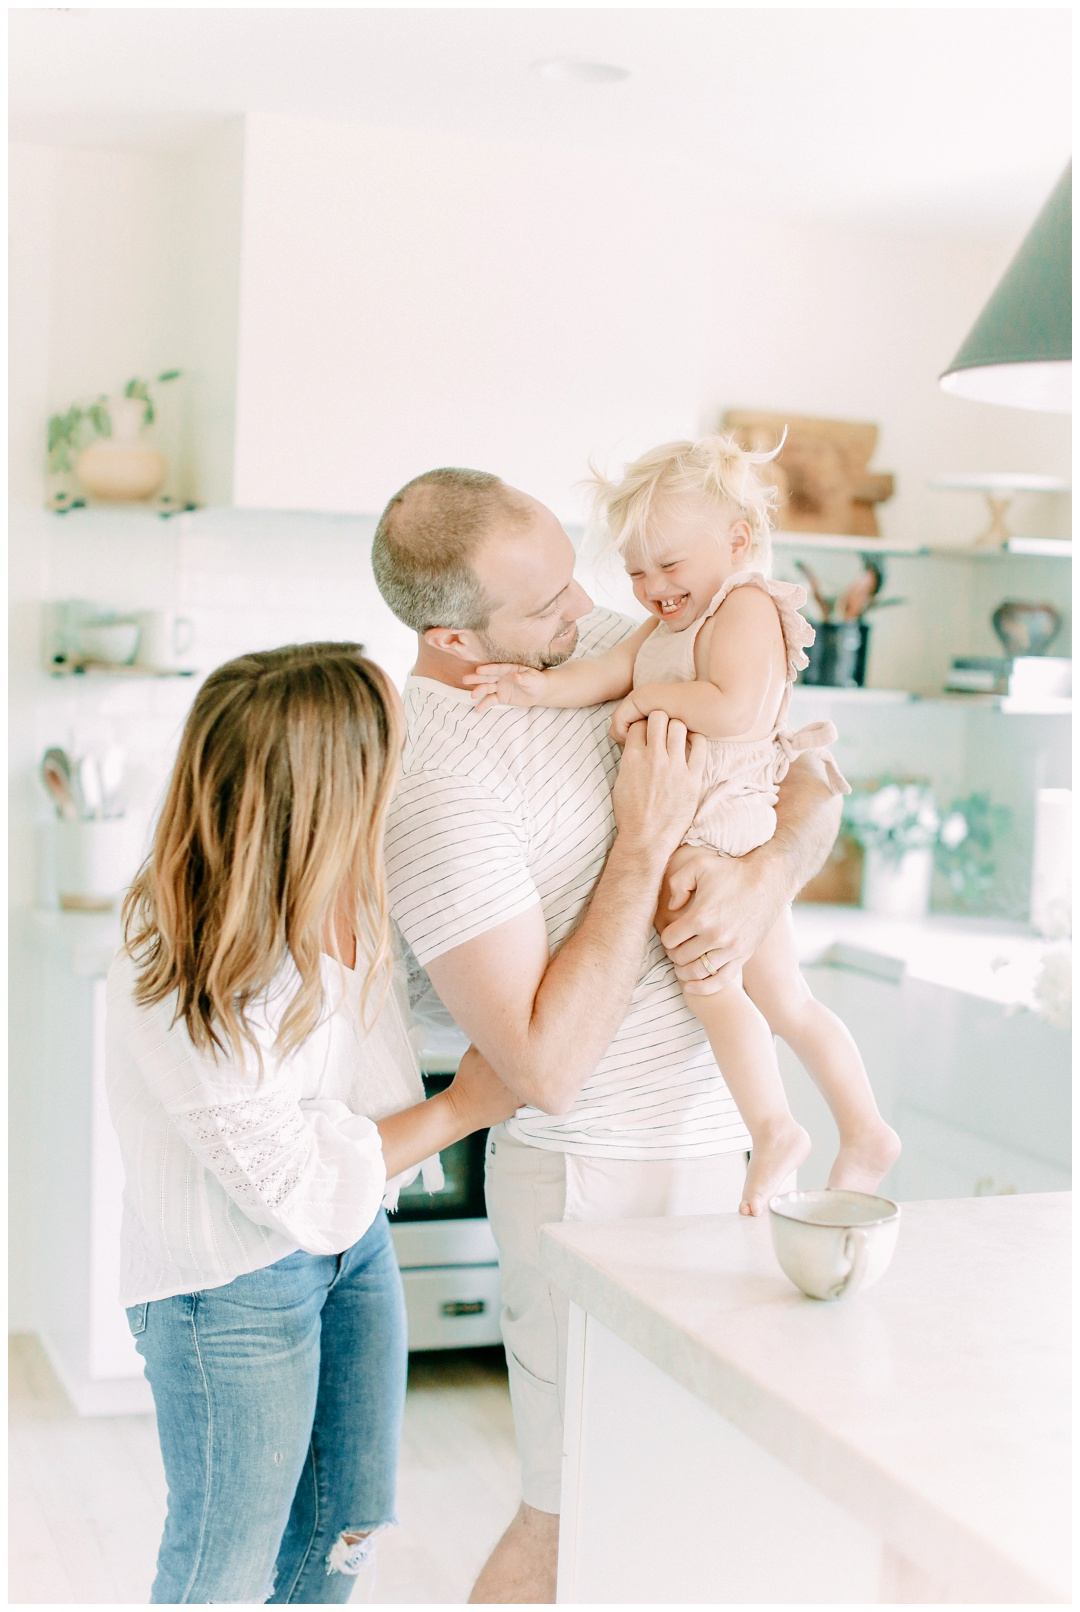 Kristin_Dinsmore_Family_Newport_Beach_Family_Photographer_in_home_lifestyle_session_Cori_kleckner_photography_Orange_county_in_home_Family_photos_Newport_Beach_Family_photos__1774.jpg